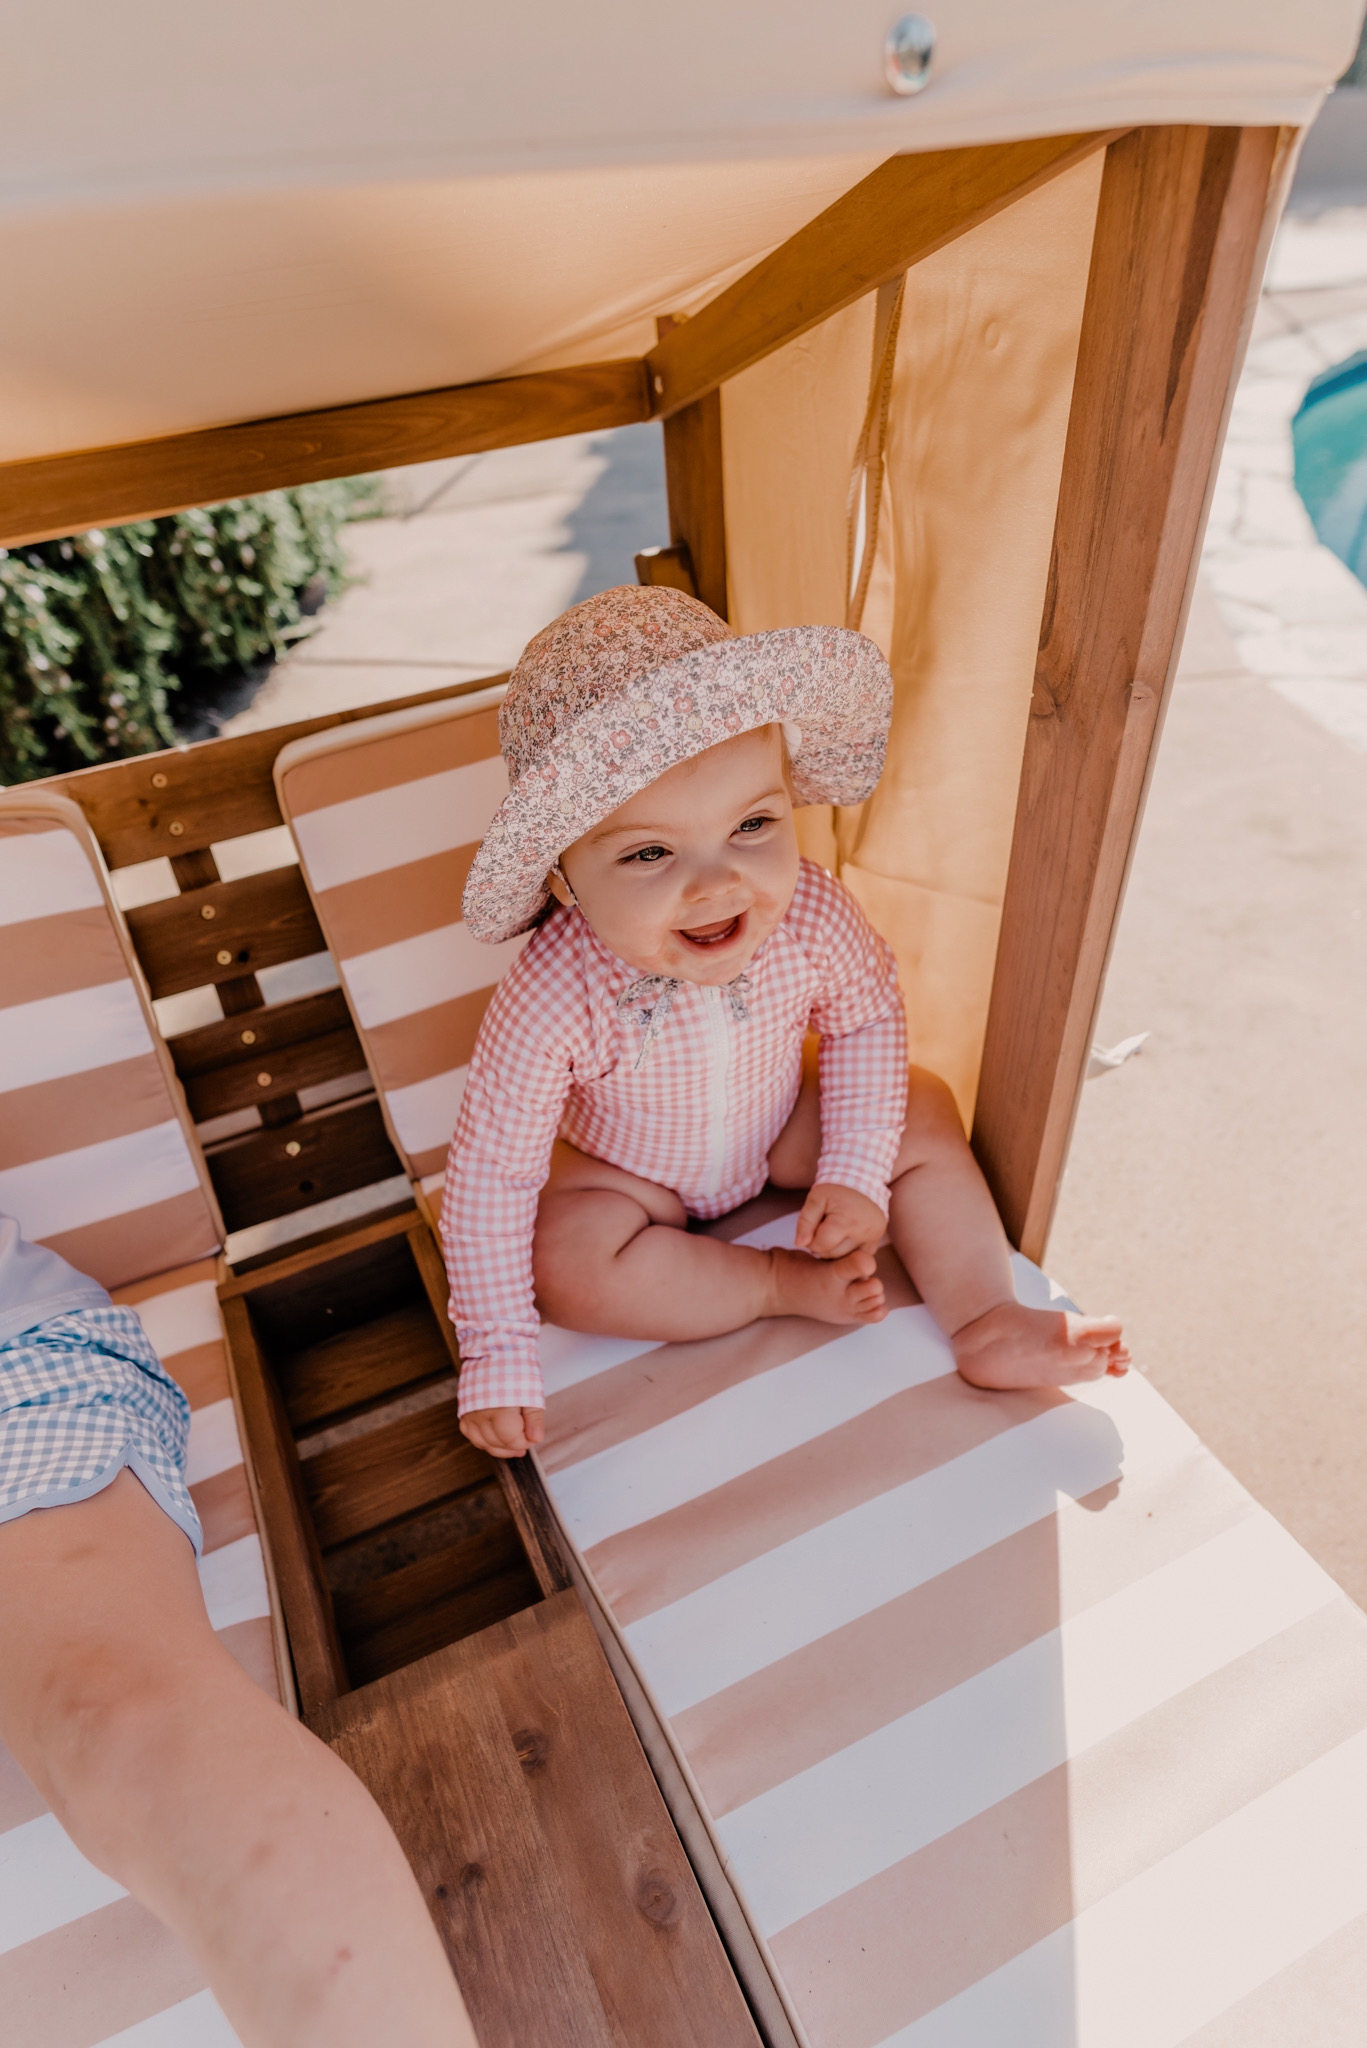 Kids Swimsuits by popular San Diego fashion blog, Navy Grace: image of two kids sitting together child size cabana and wearing blue and light pink gingham swimsuits and rash guards.